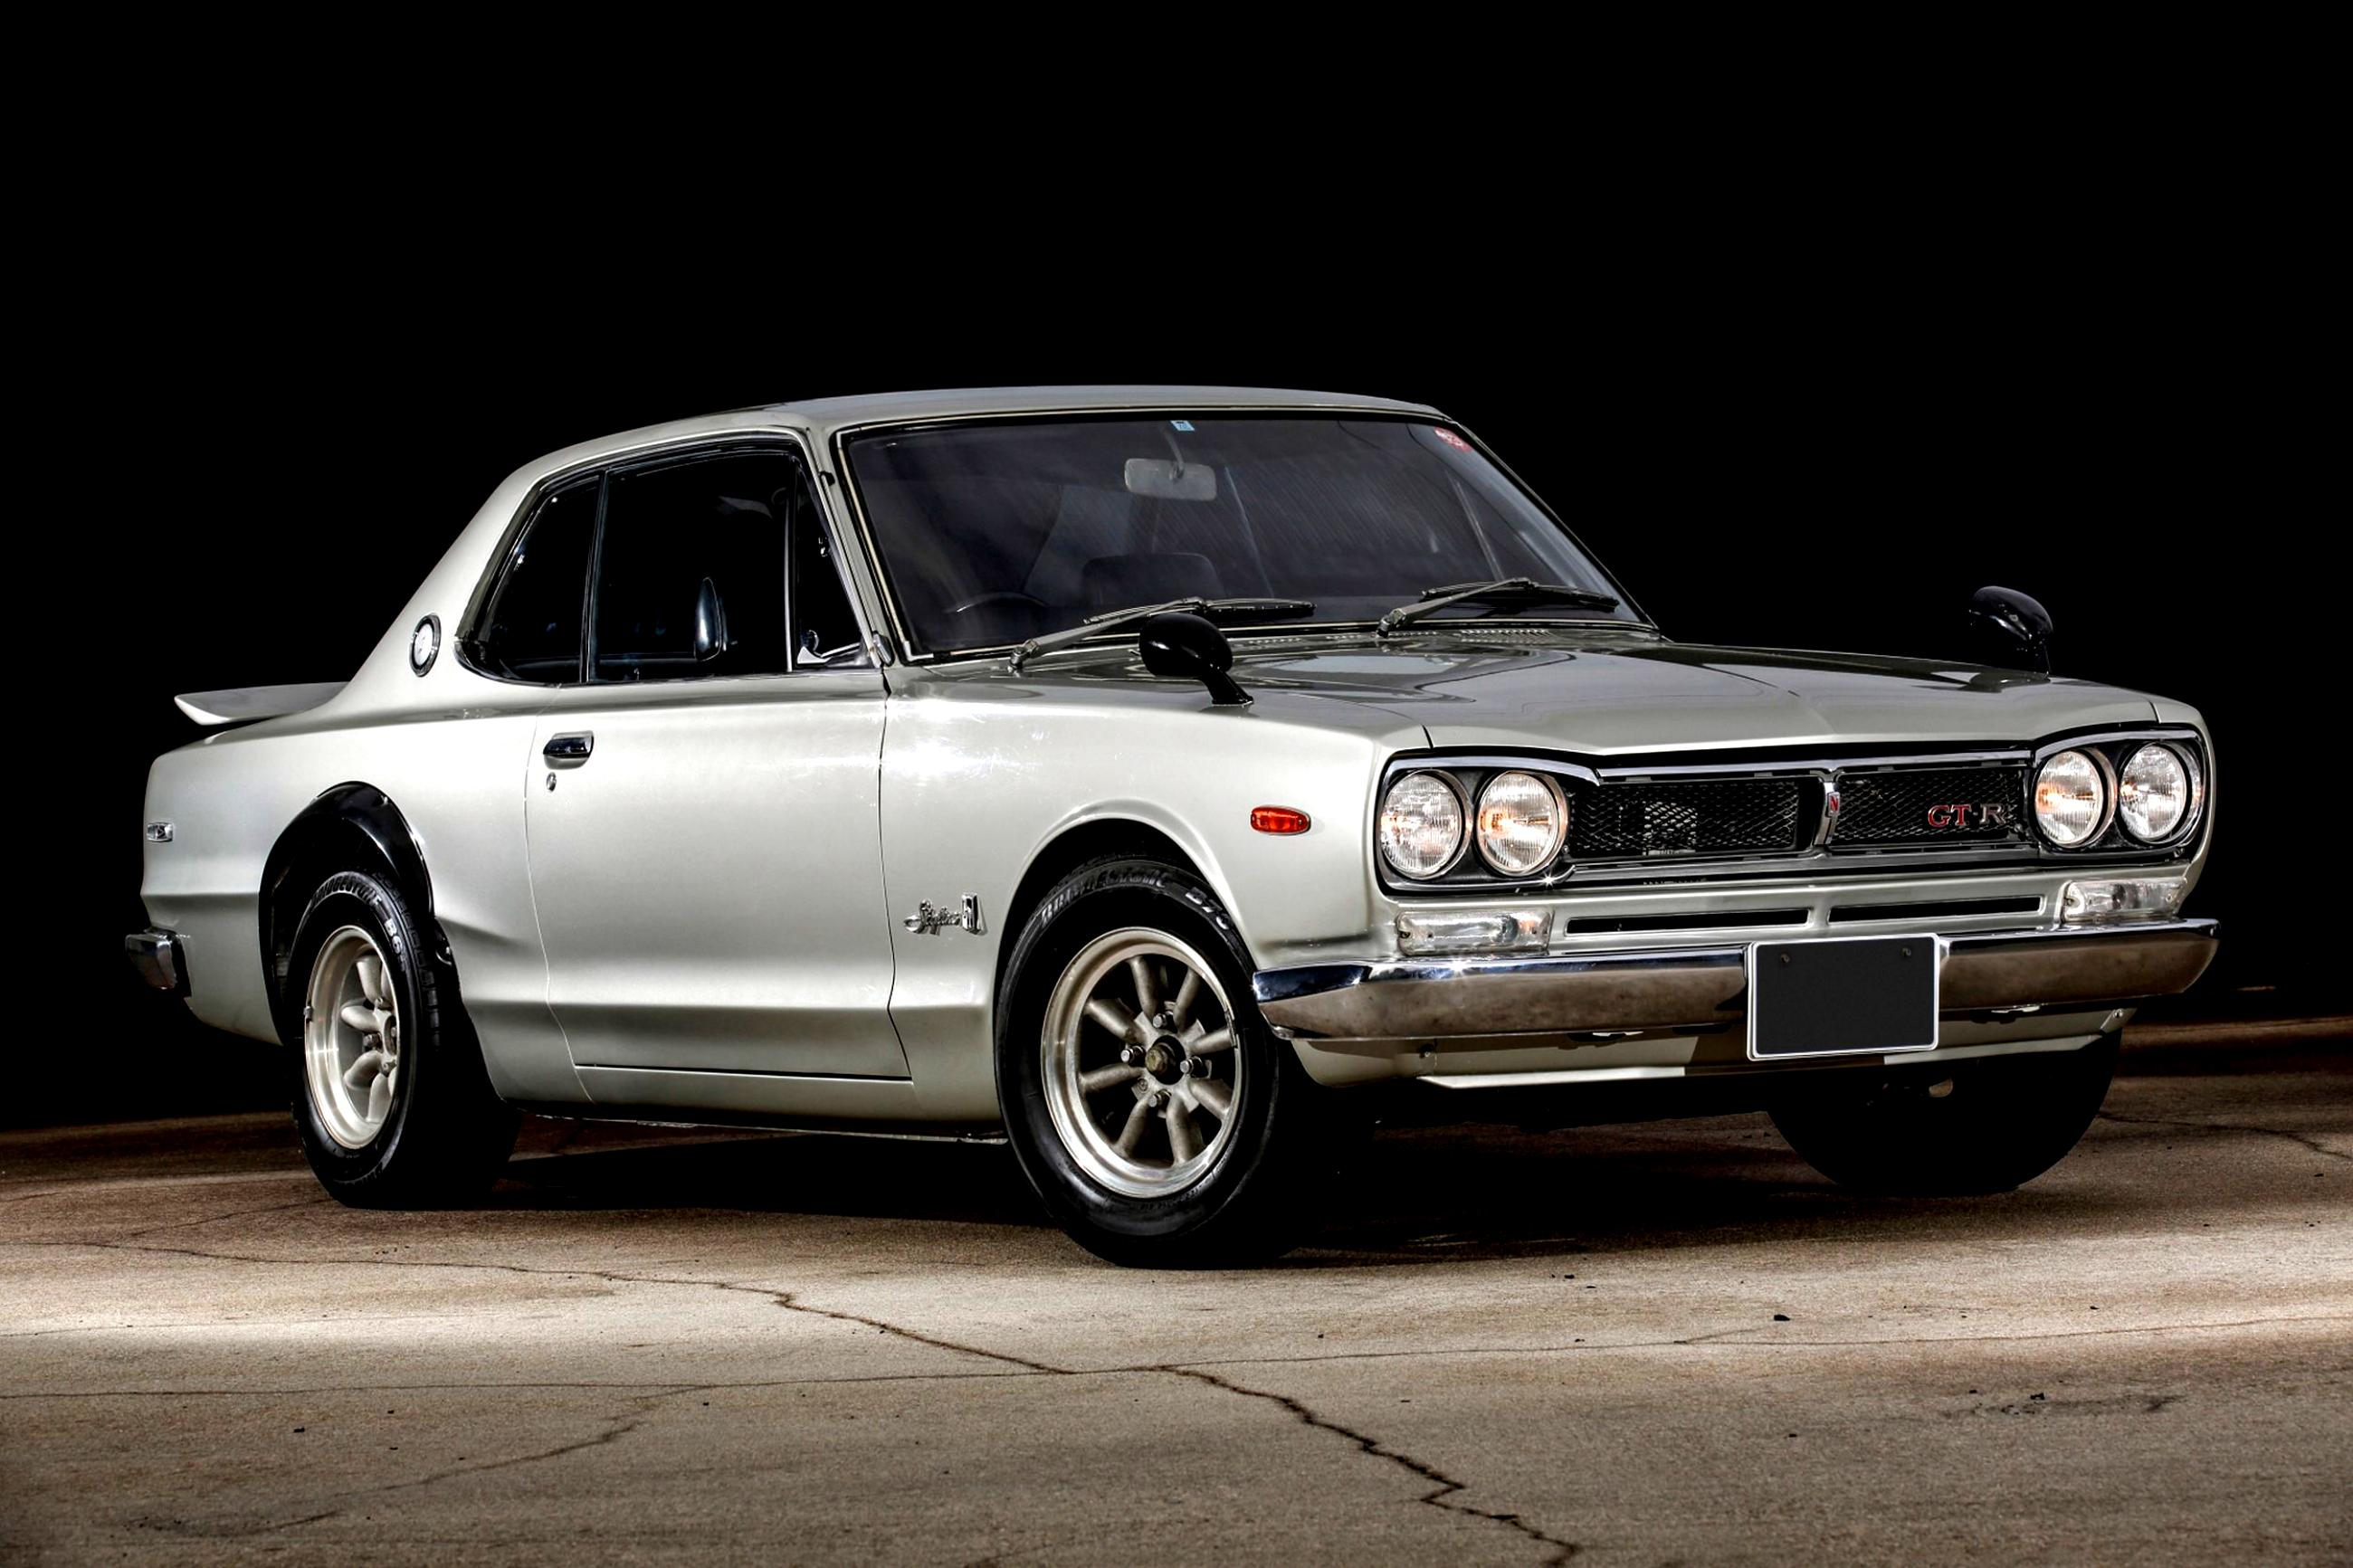 Nissan Skyline Gt R Pgc 10 1969 On Motoimg Com